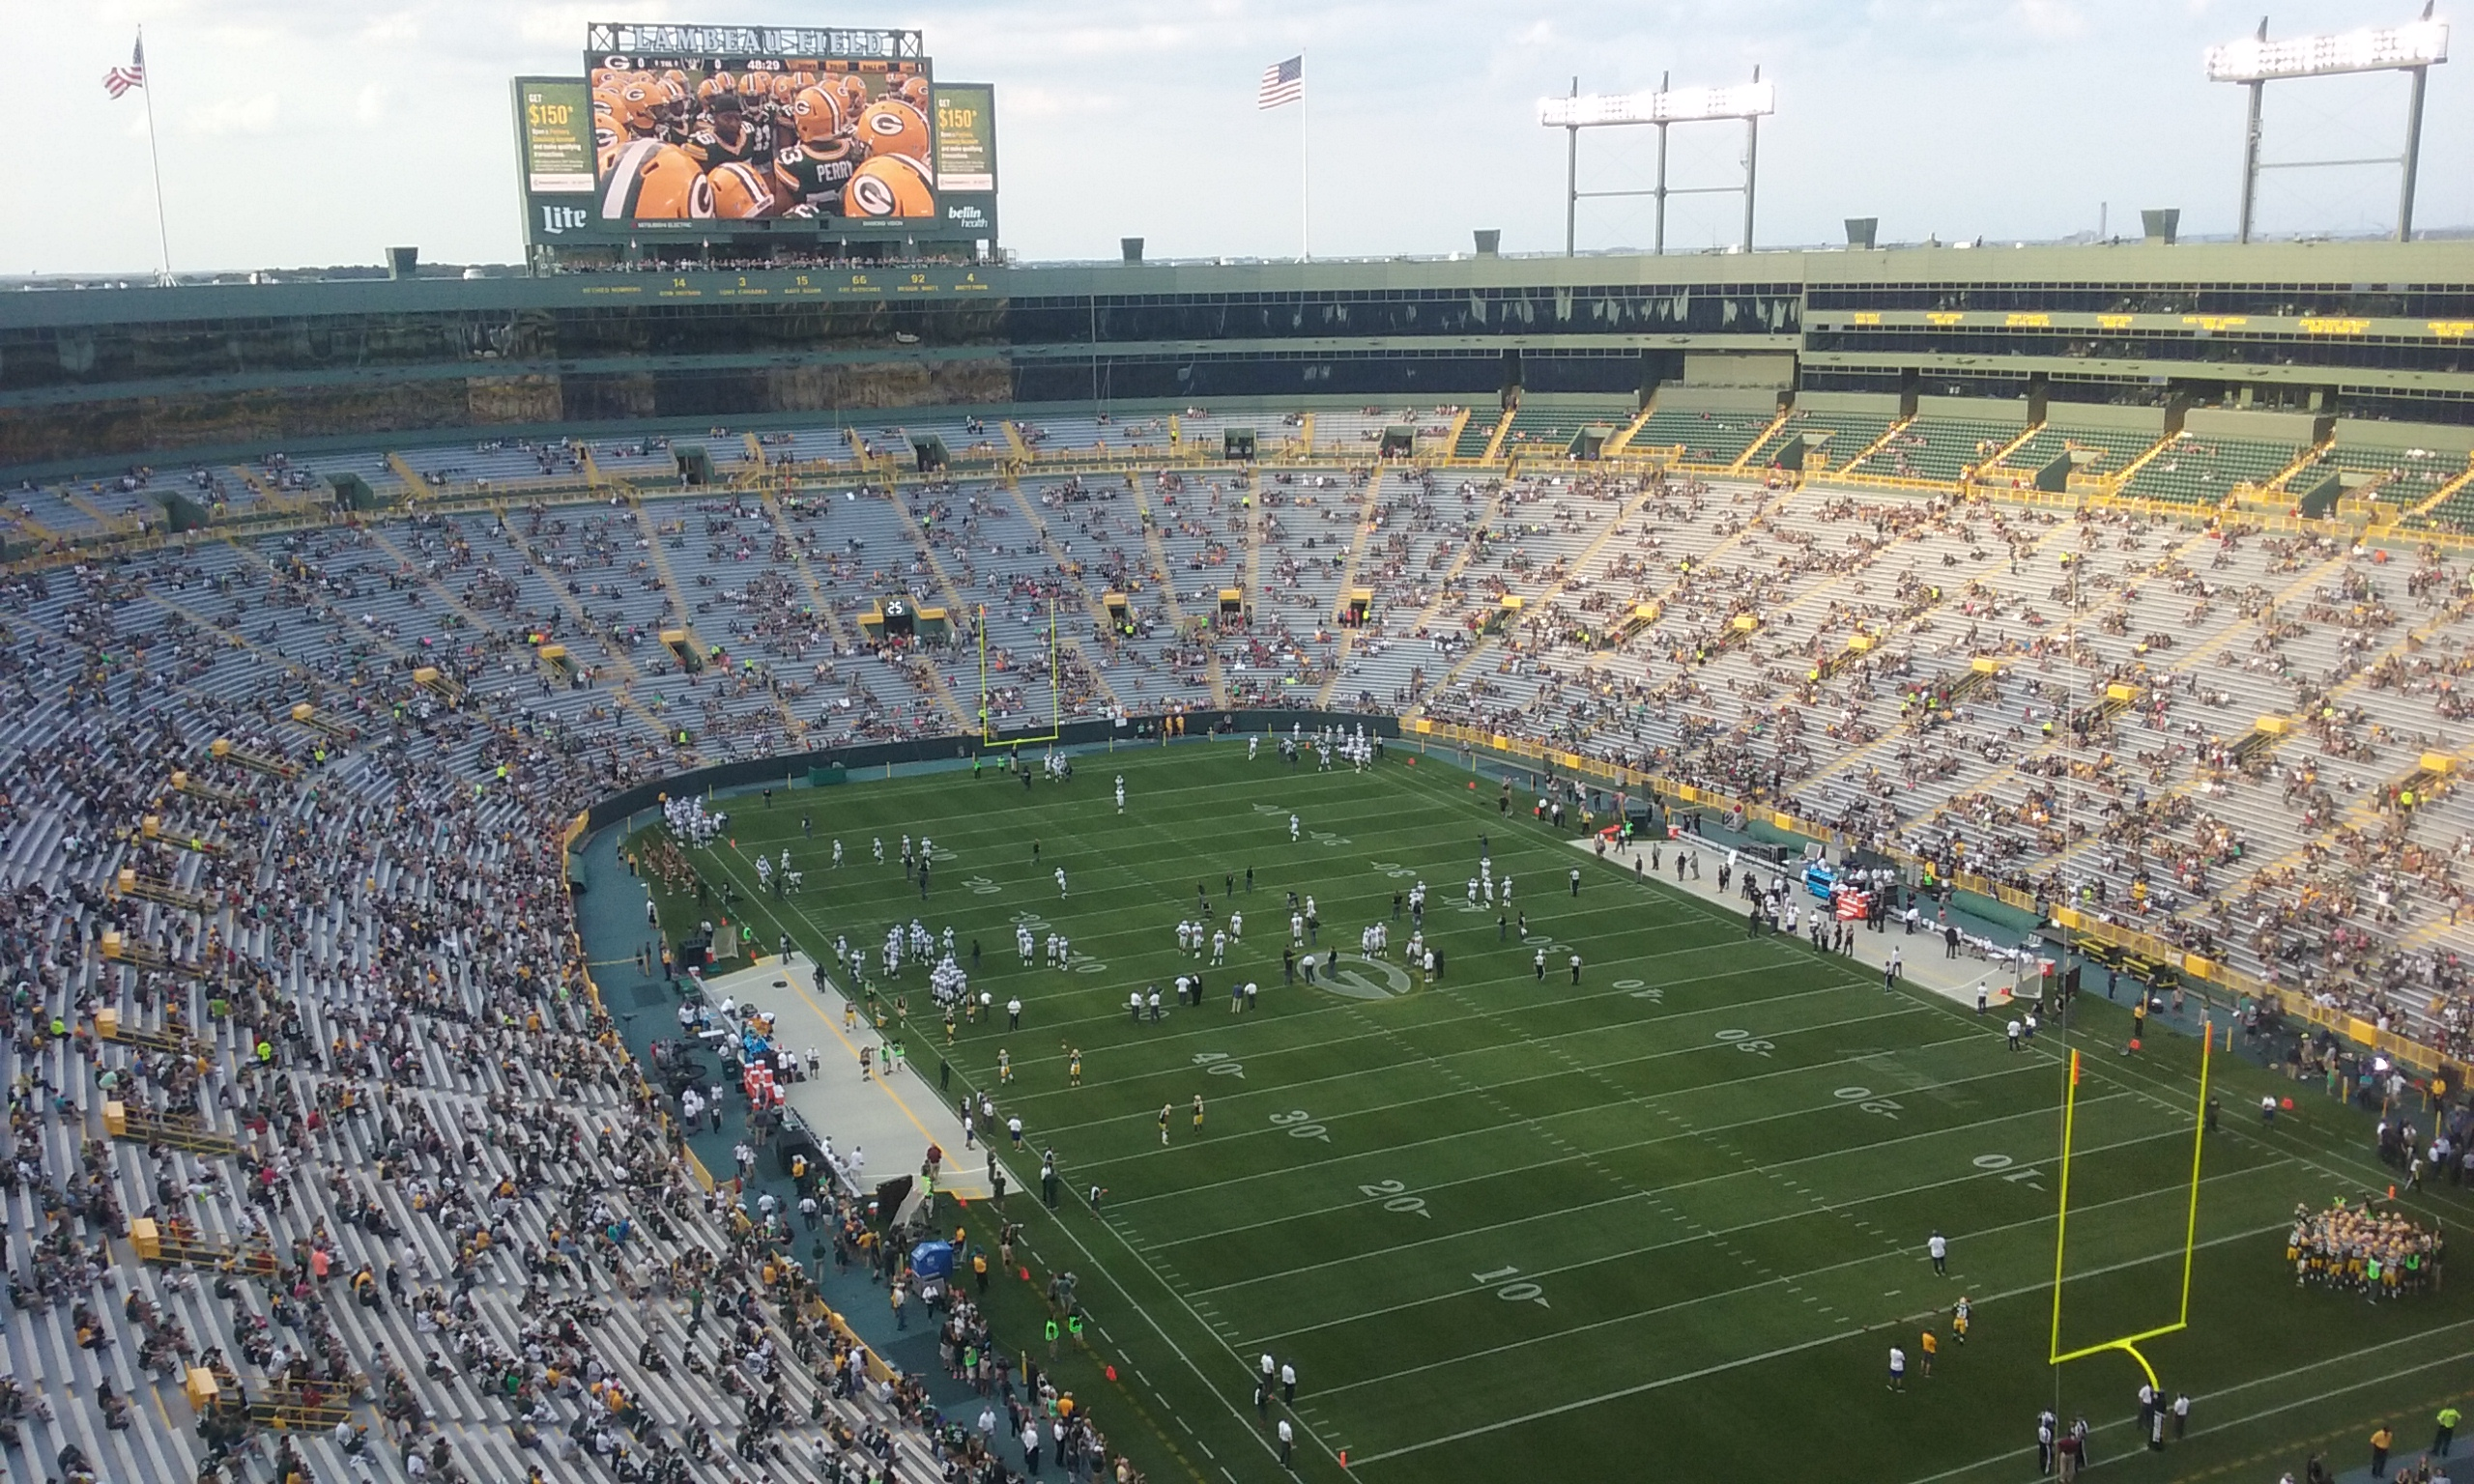 Lambeau Field, home of the Green Bay Packers. File photo.